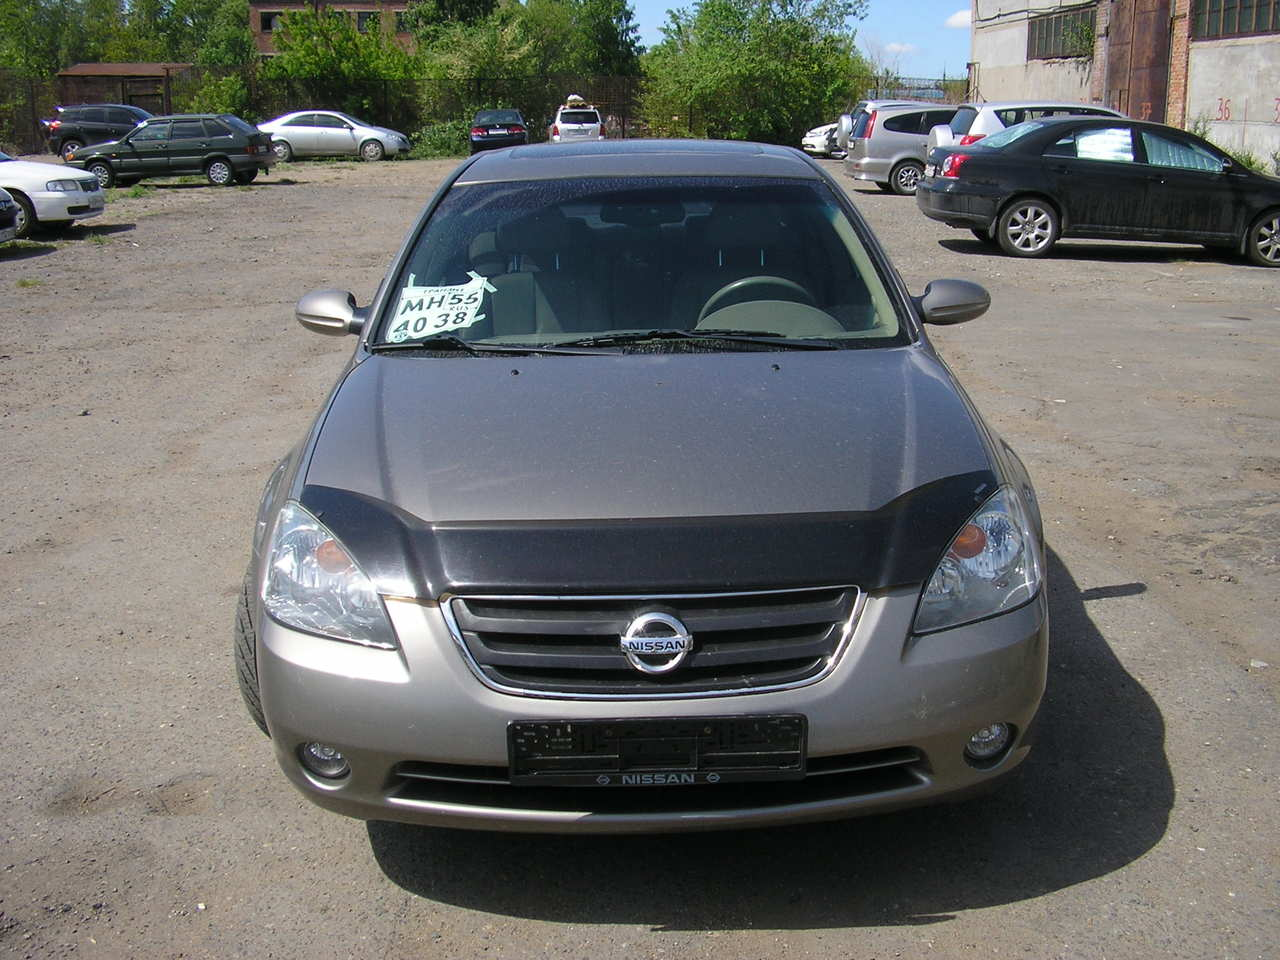 used 2002 nissan altima pics 2 5 gasoline ff automatic for sale. Black Bedroom Furniture Sets. Home Design Ideas